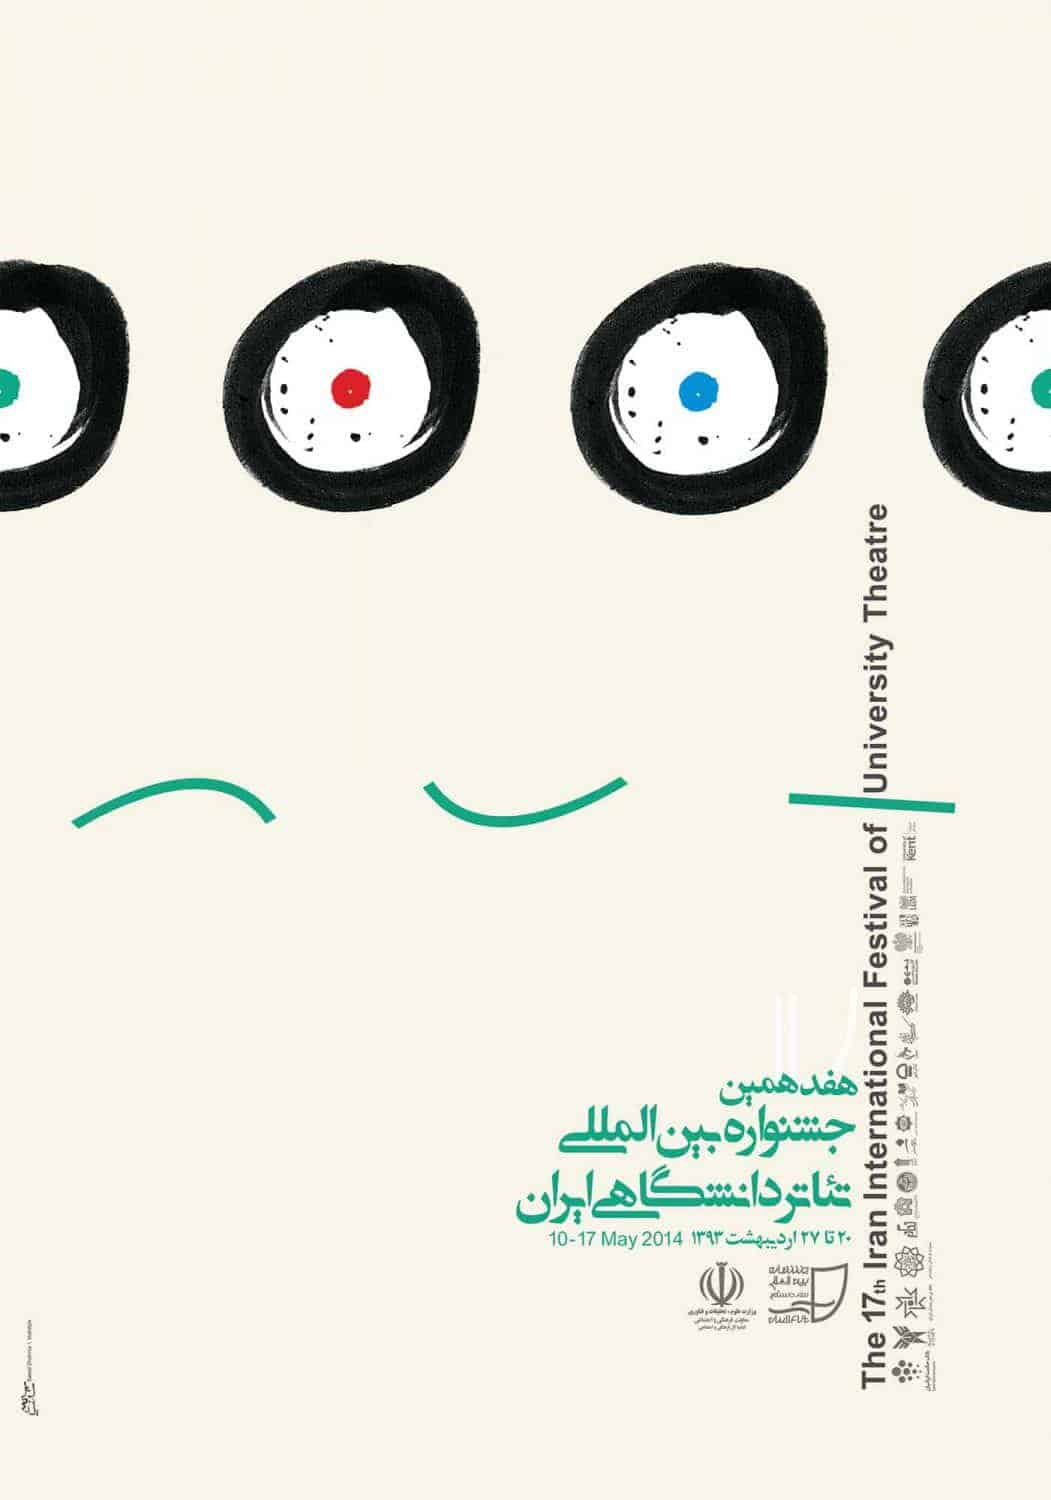 The 17th Iran International university theater festival Poster Design